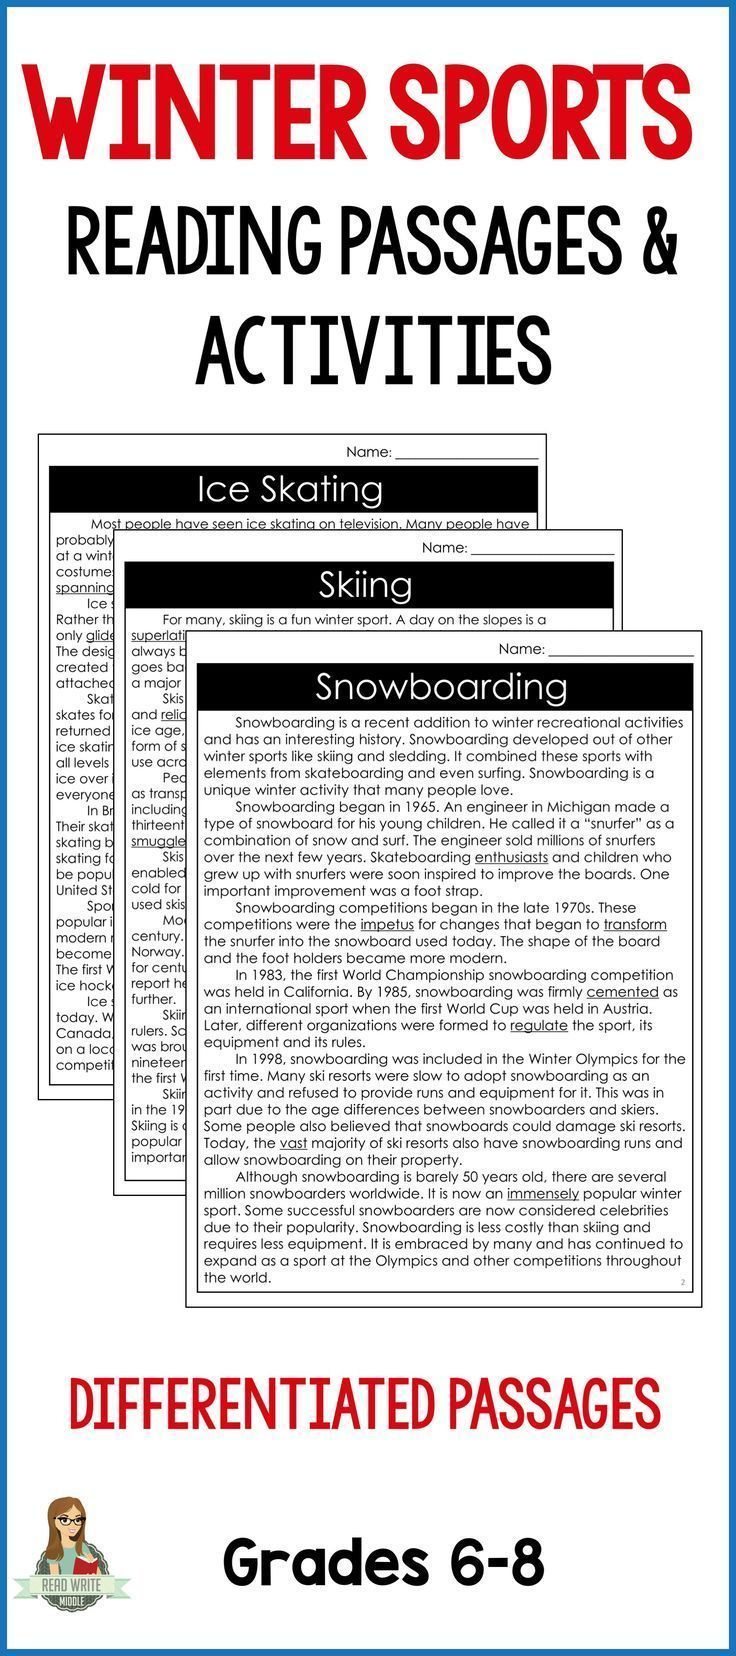 This bundles includes three different reading comprehension passages and questions that cover the history of ice skating, skiing & snowboarding. Each passage is written at two reading levels and includes a differentiated context clues activity. Reading comprehension questions and a writing activity are also included for each passage.